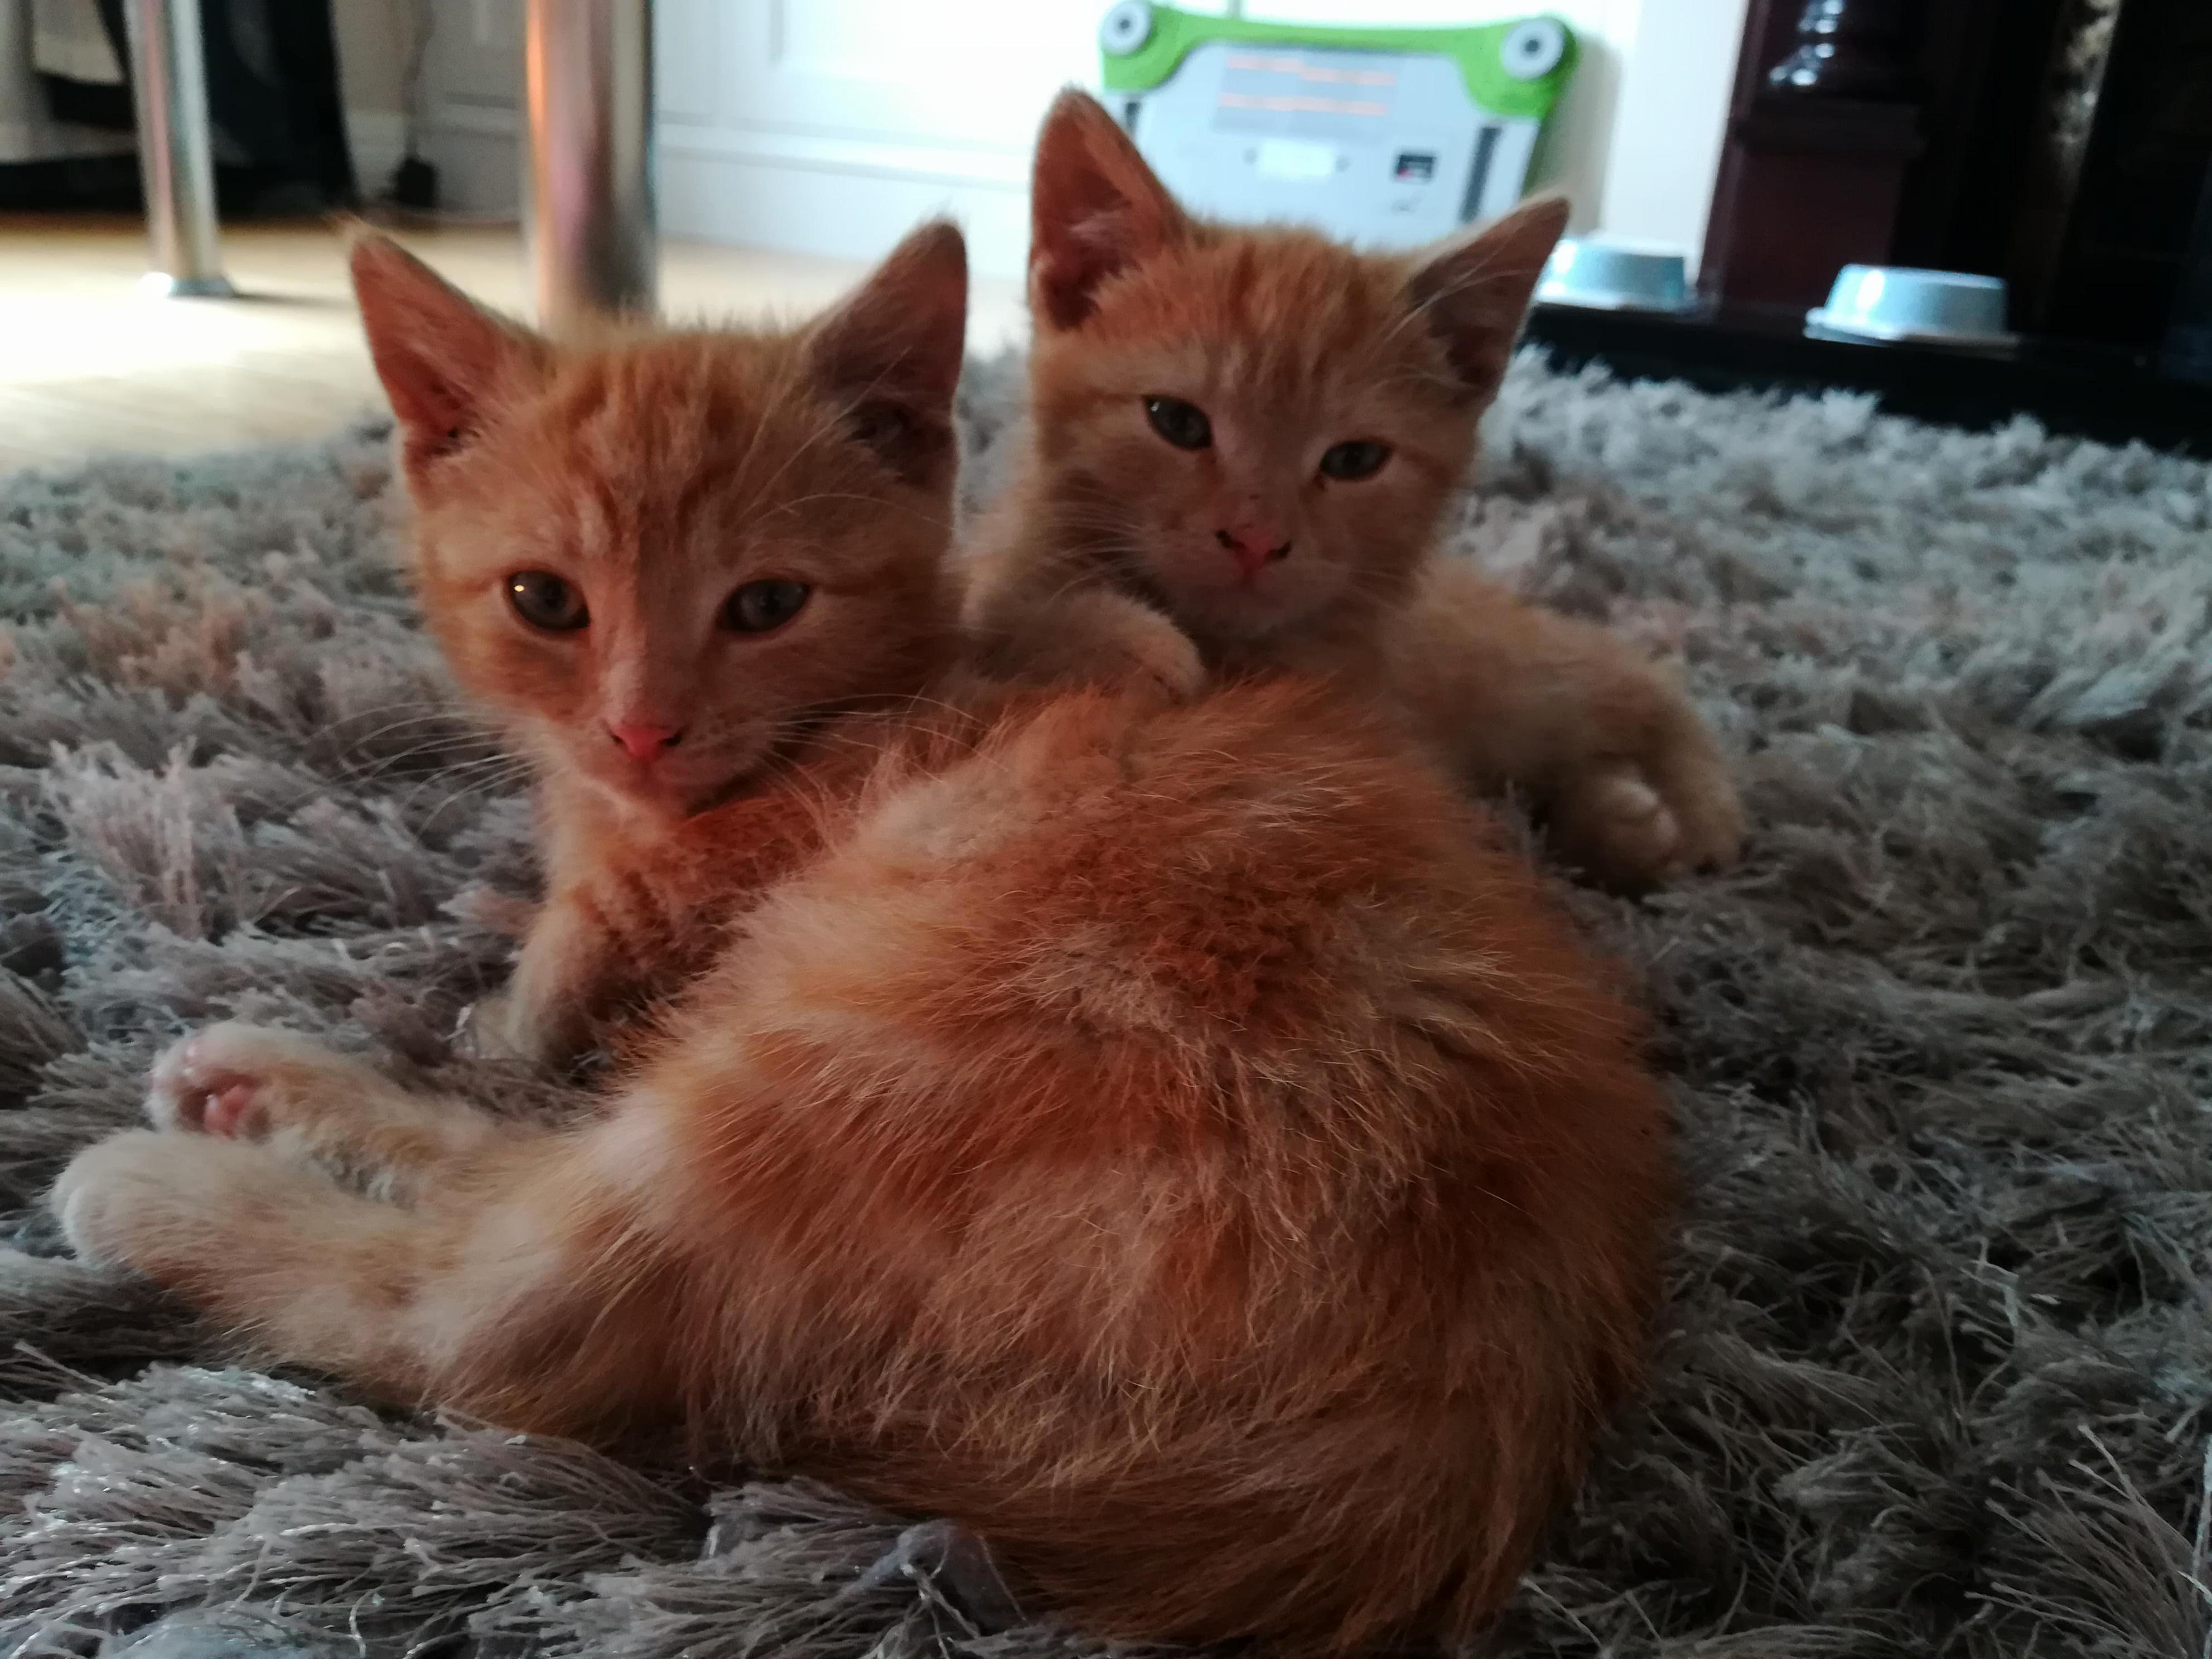 Foster kittens off to their new home!